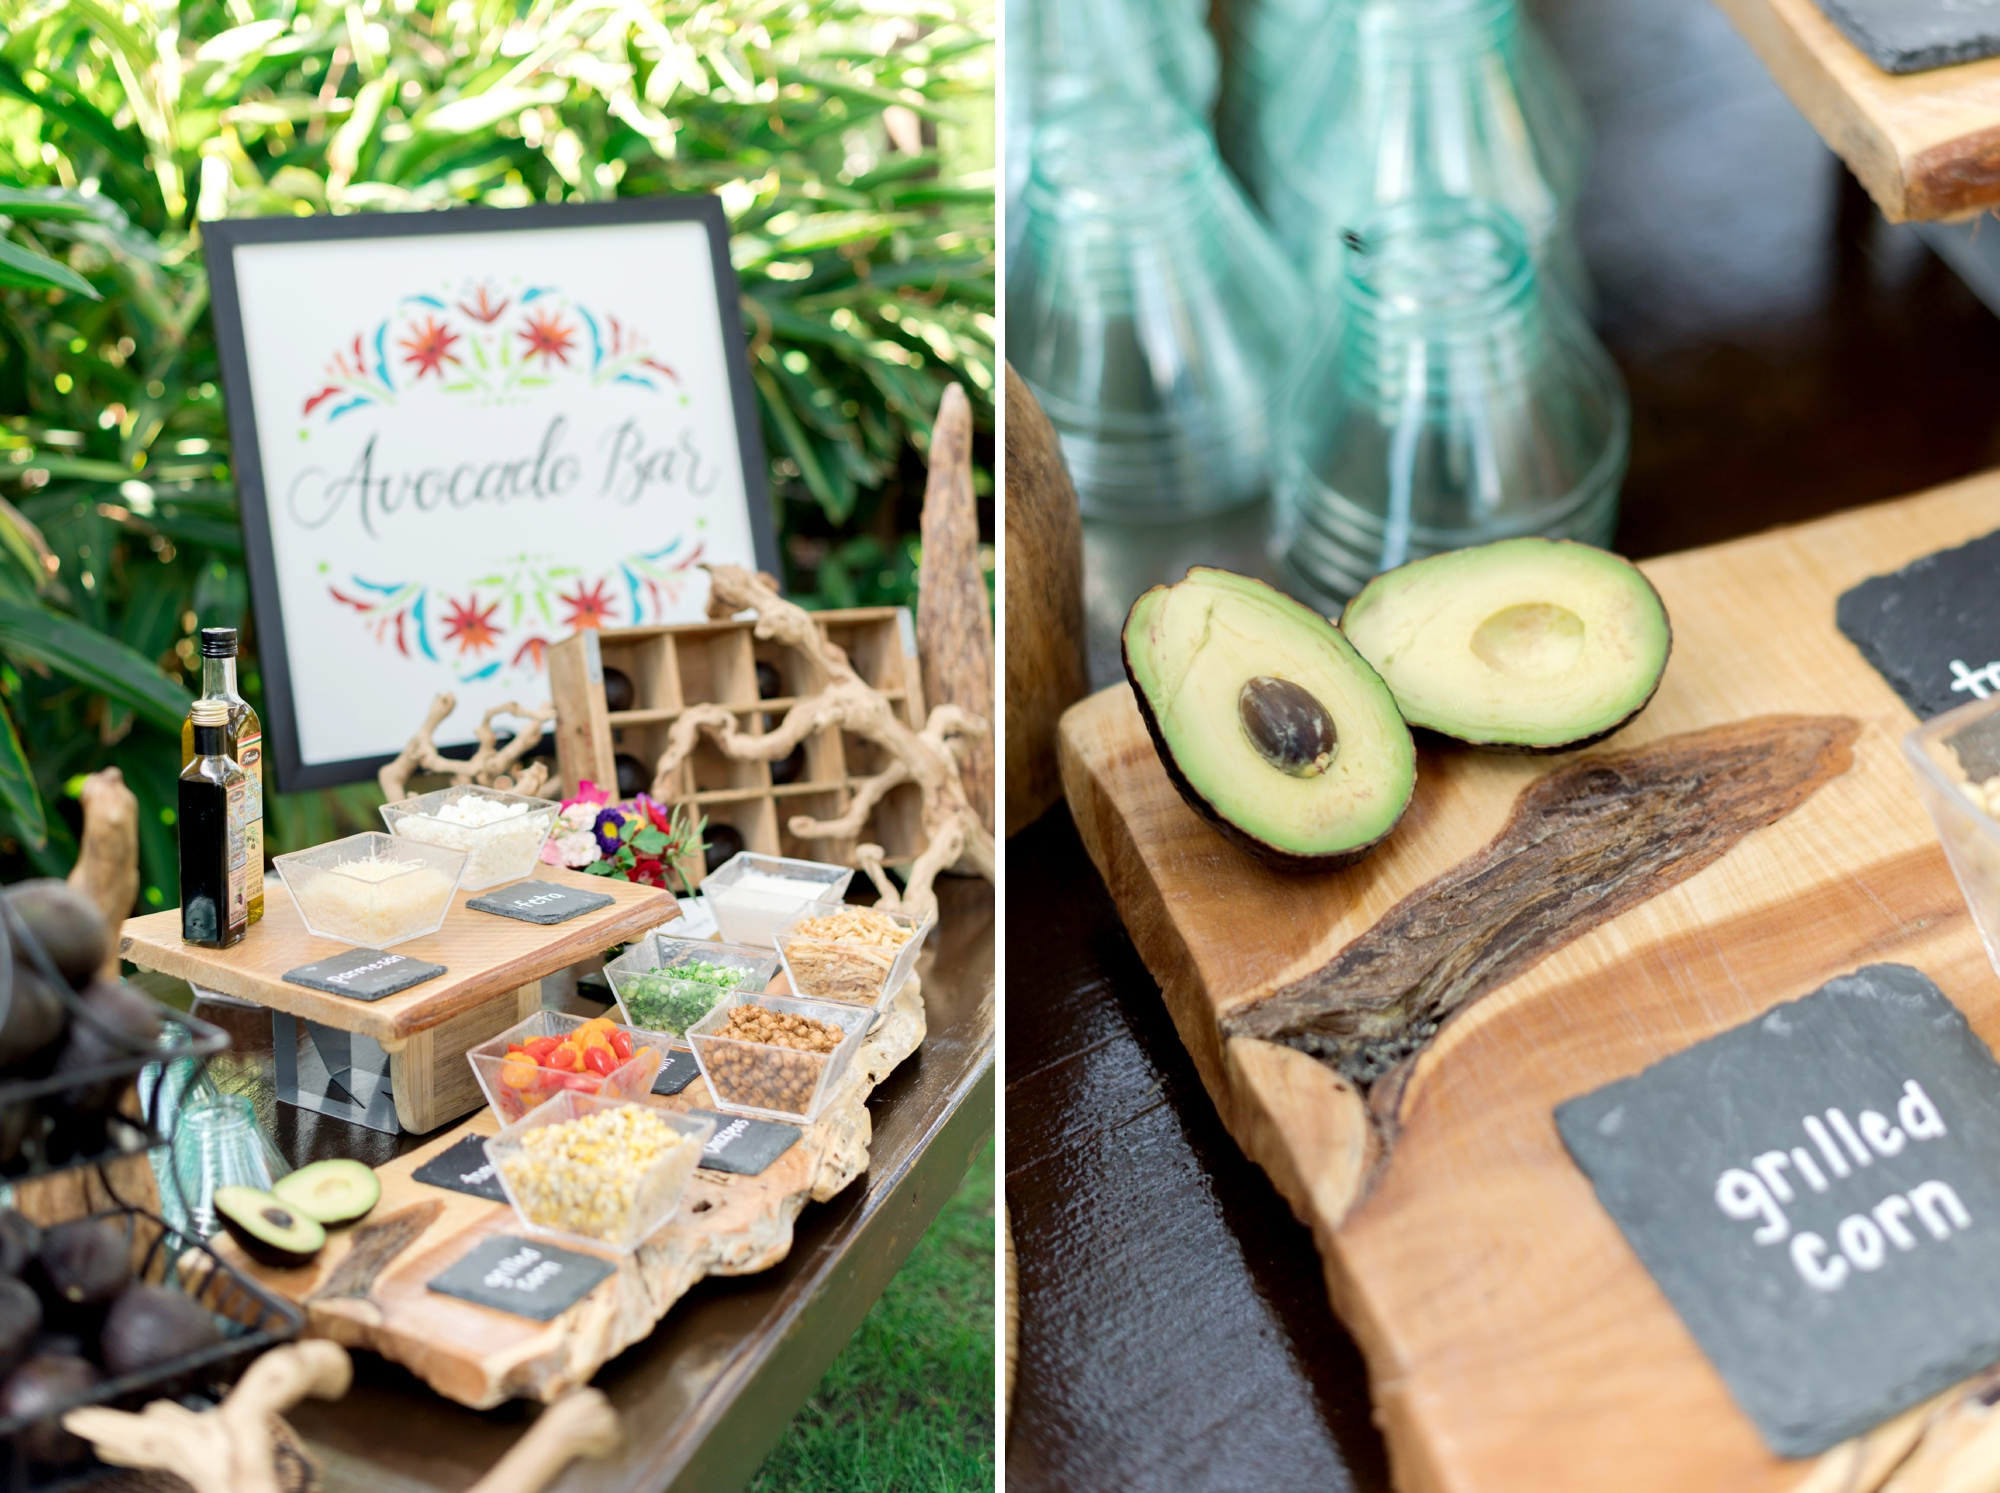 avocado bar at cocktail hour wedding